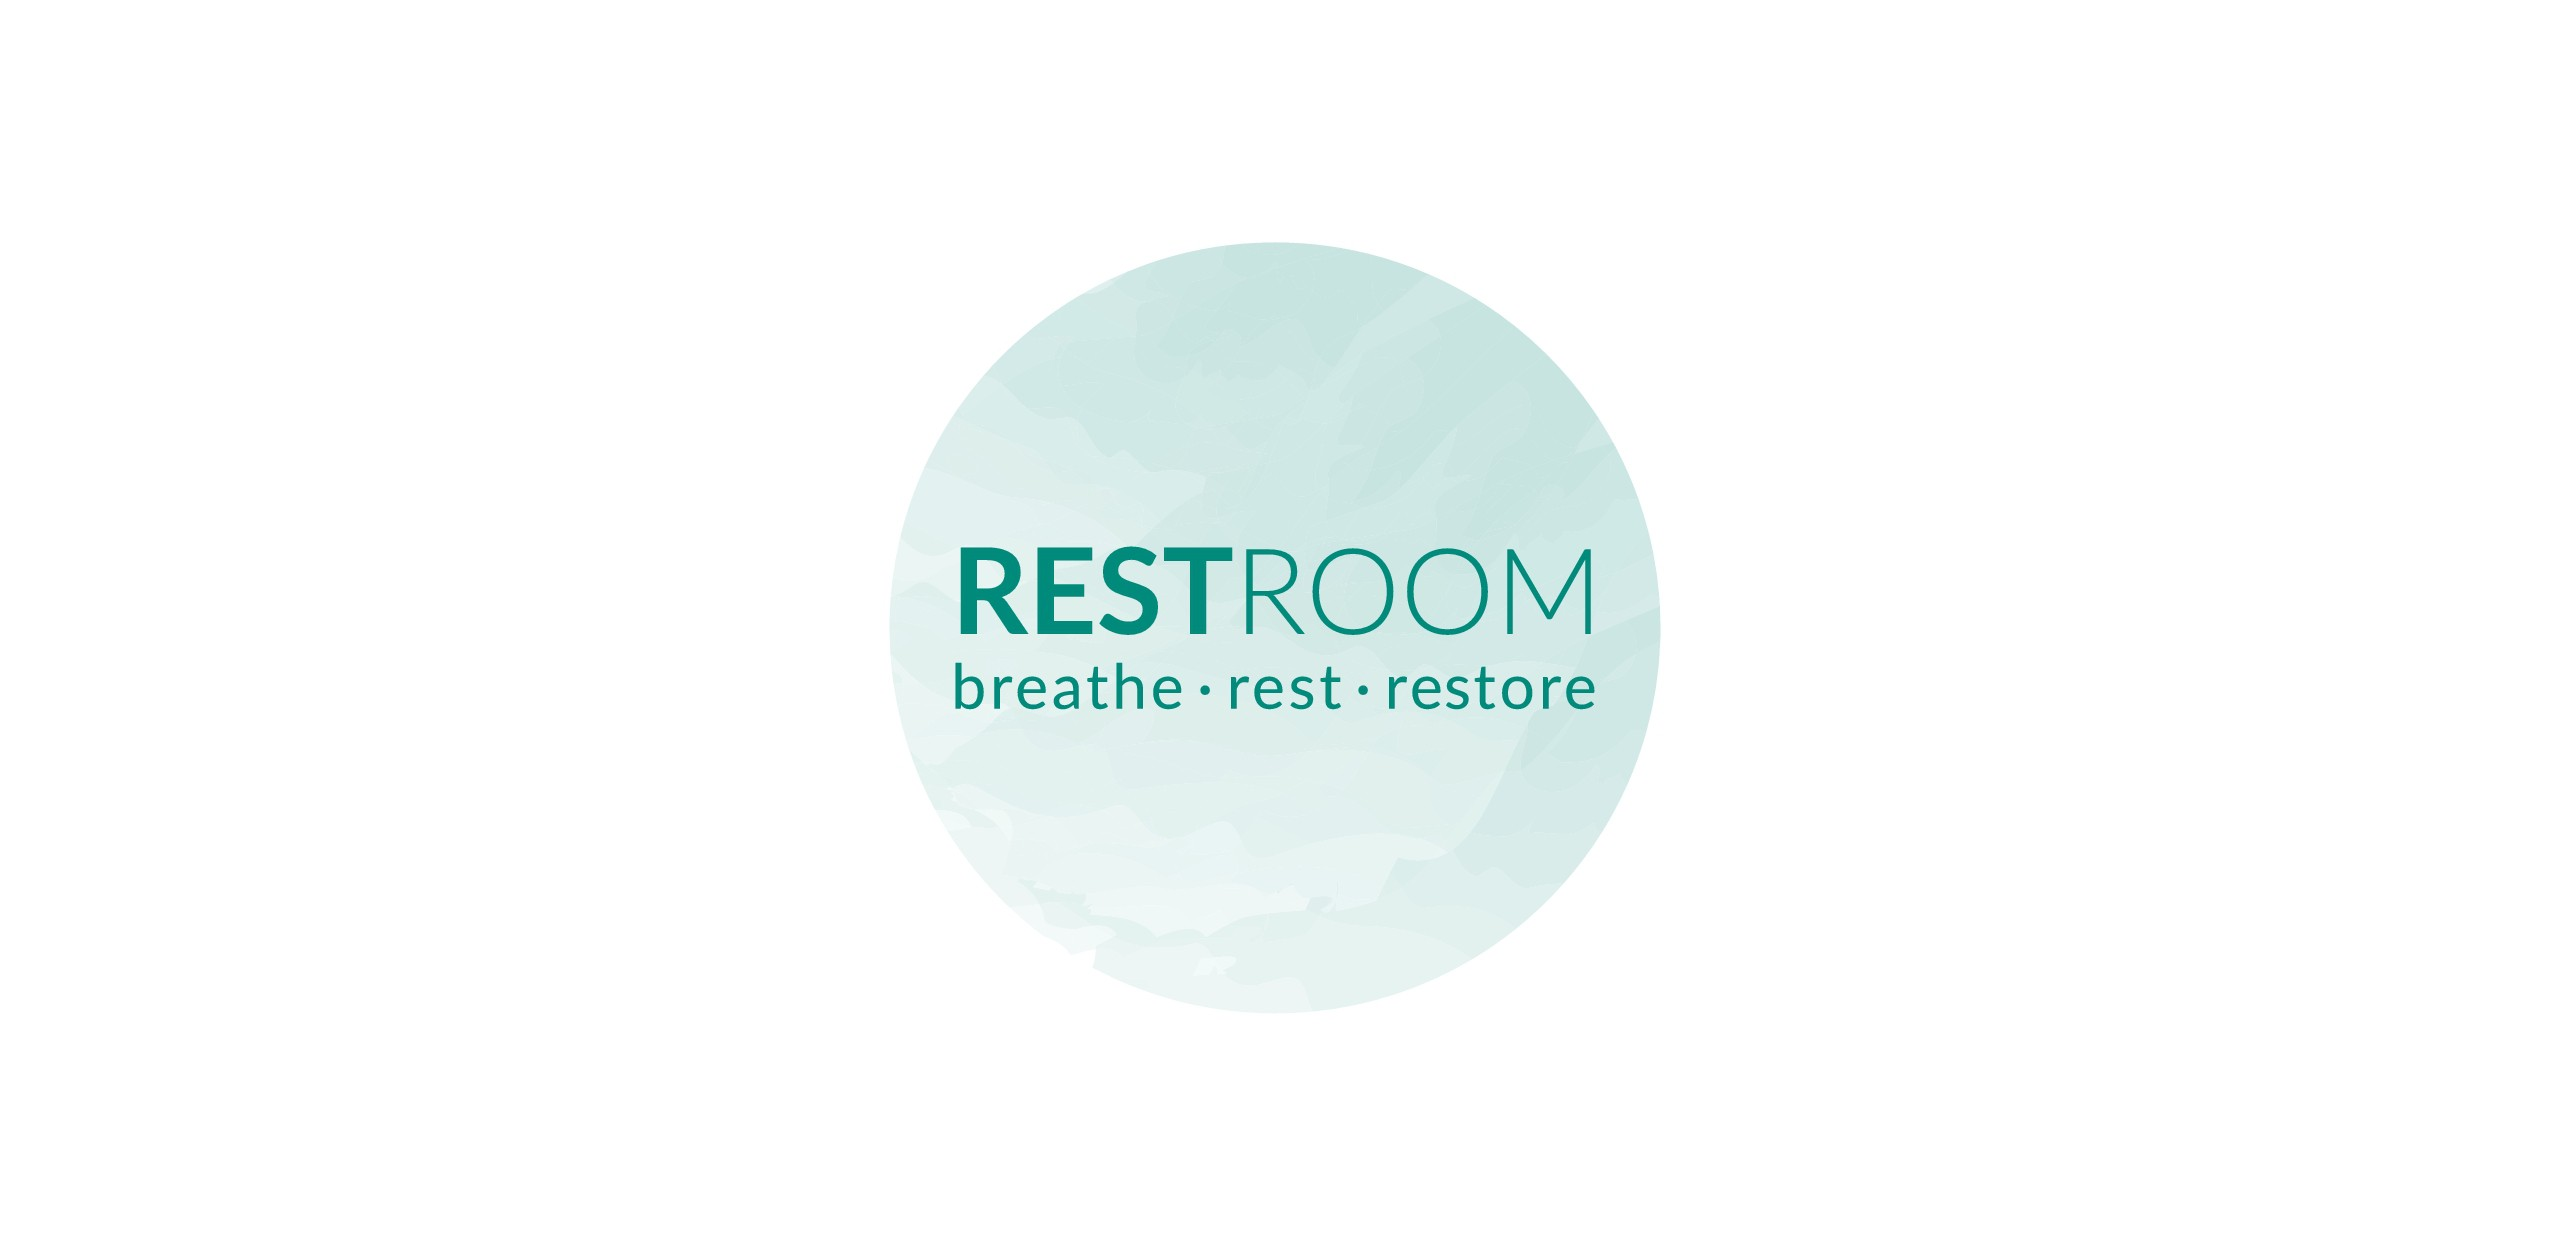 Create a sophisticated symbol to represent or work with the words Rest Room - calm, soothing space for relaxation